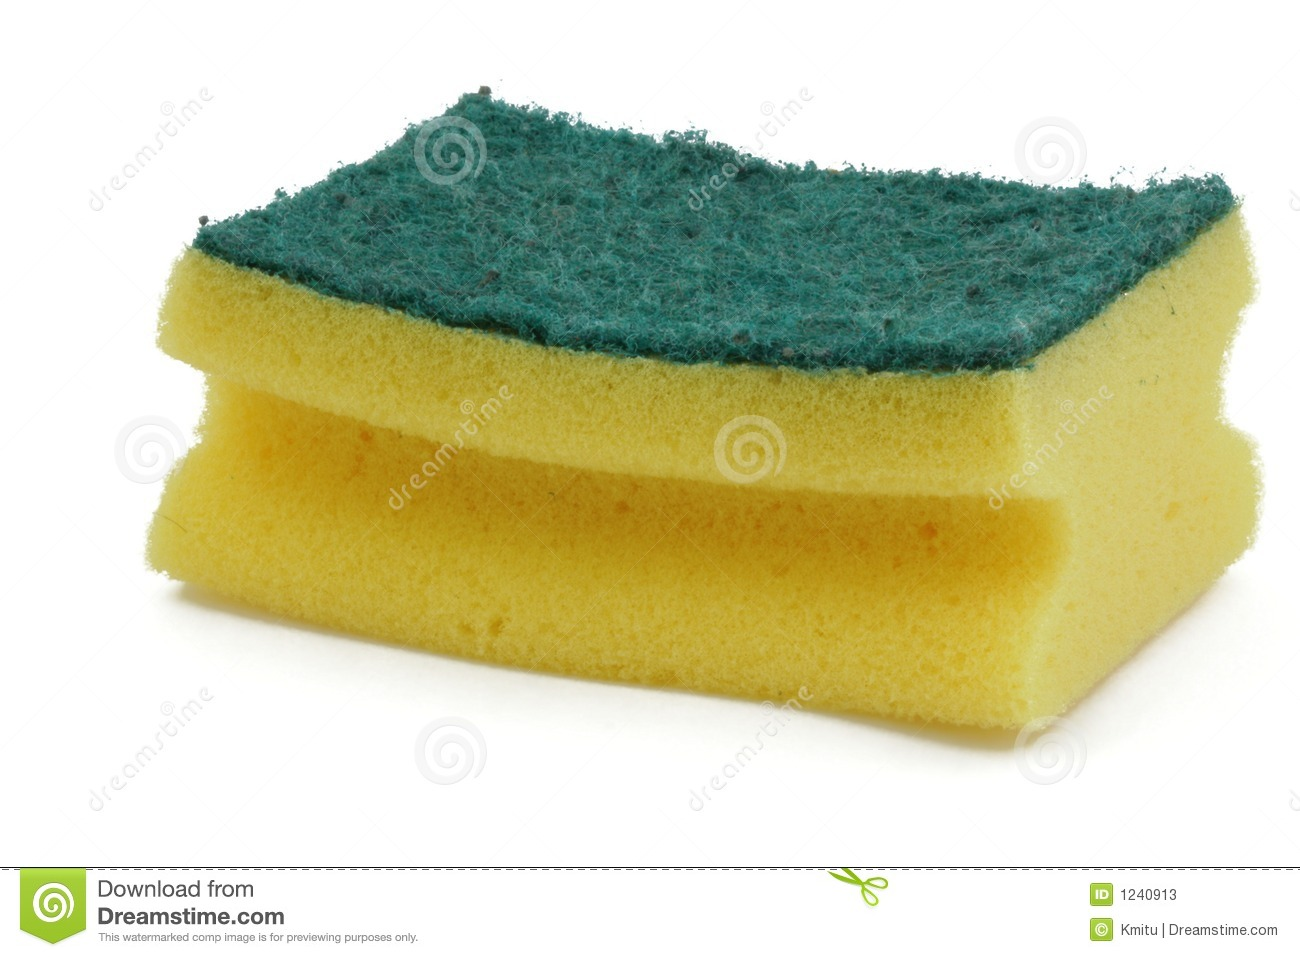 Washing-up Sponge Stock Photos - Image: 1240913